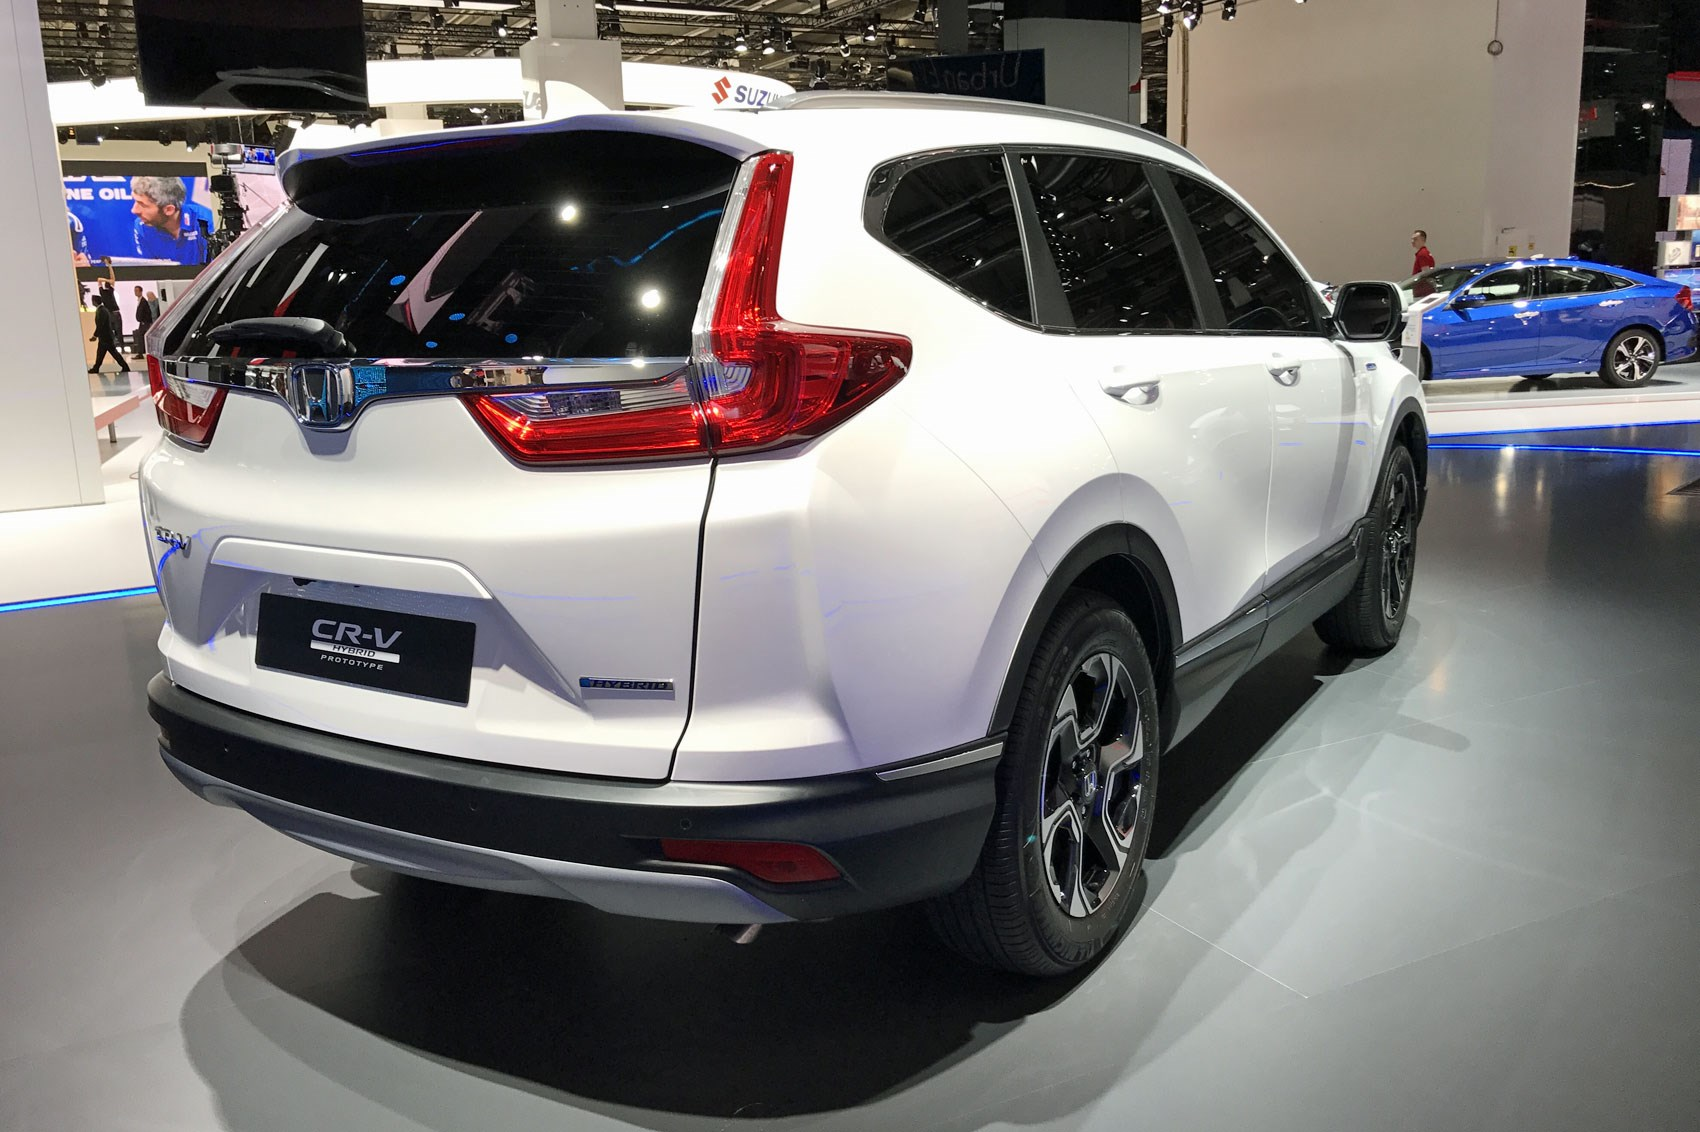 Honda Cr V Hybrid At Frankfurt 2017 Previews 2018 Production Model